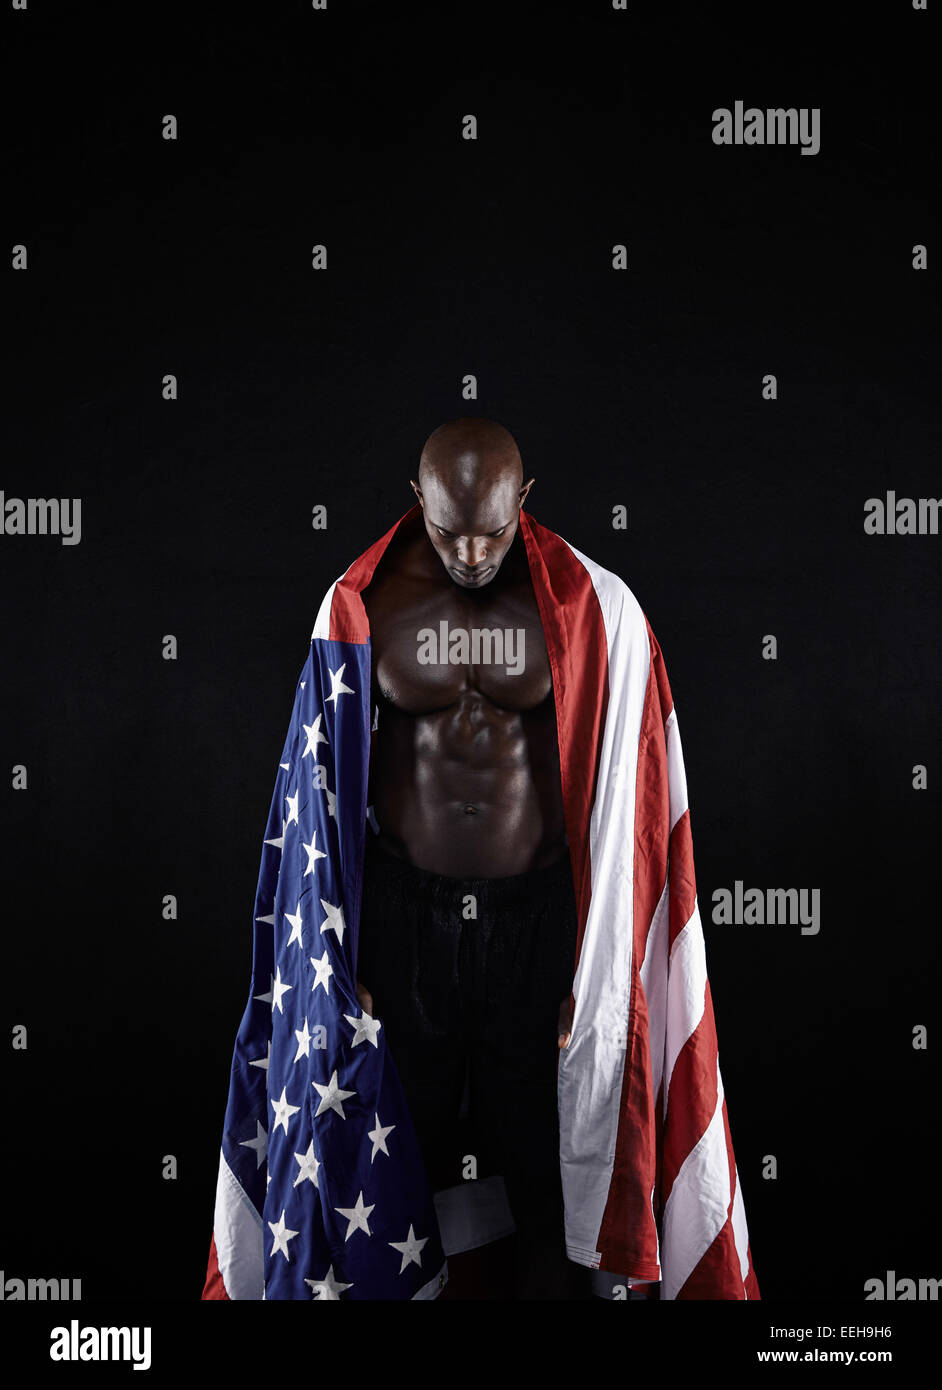 Shirtless muscular man with American flag on black background. Olympics athlete with USA flag looking down. - Stock Image